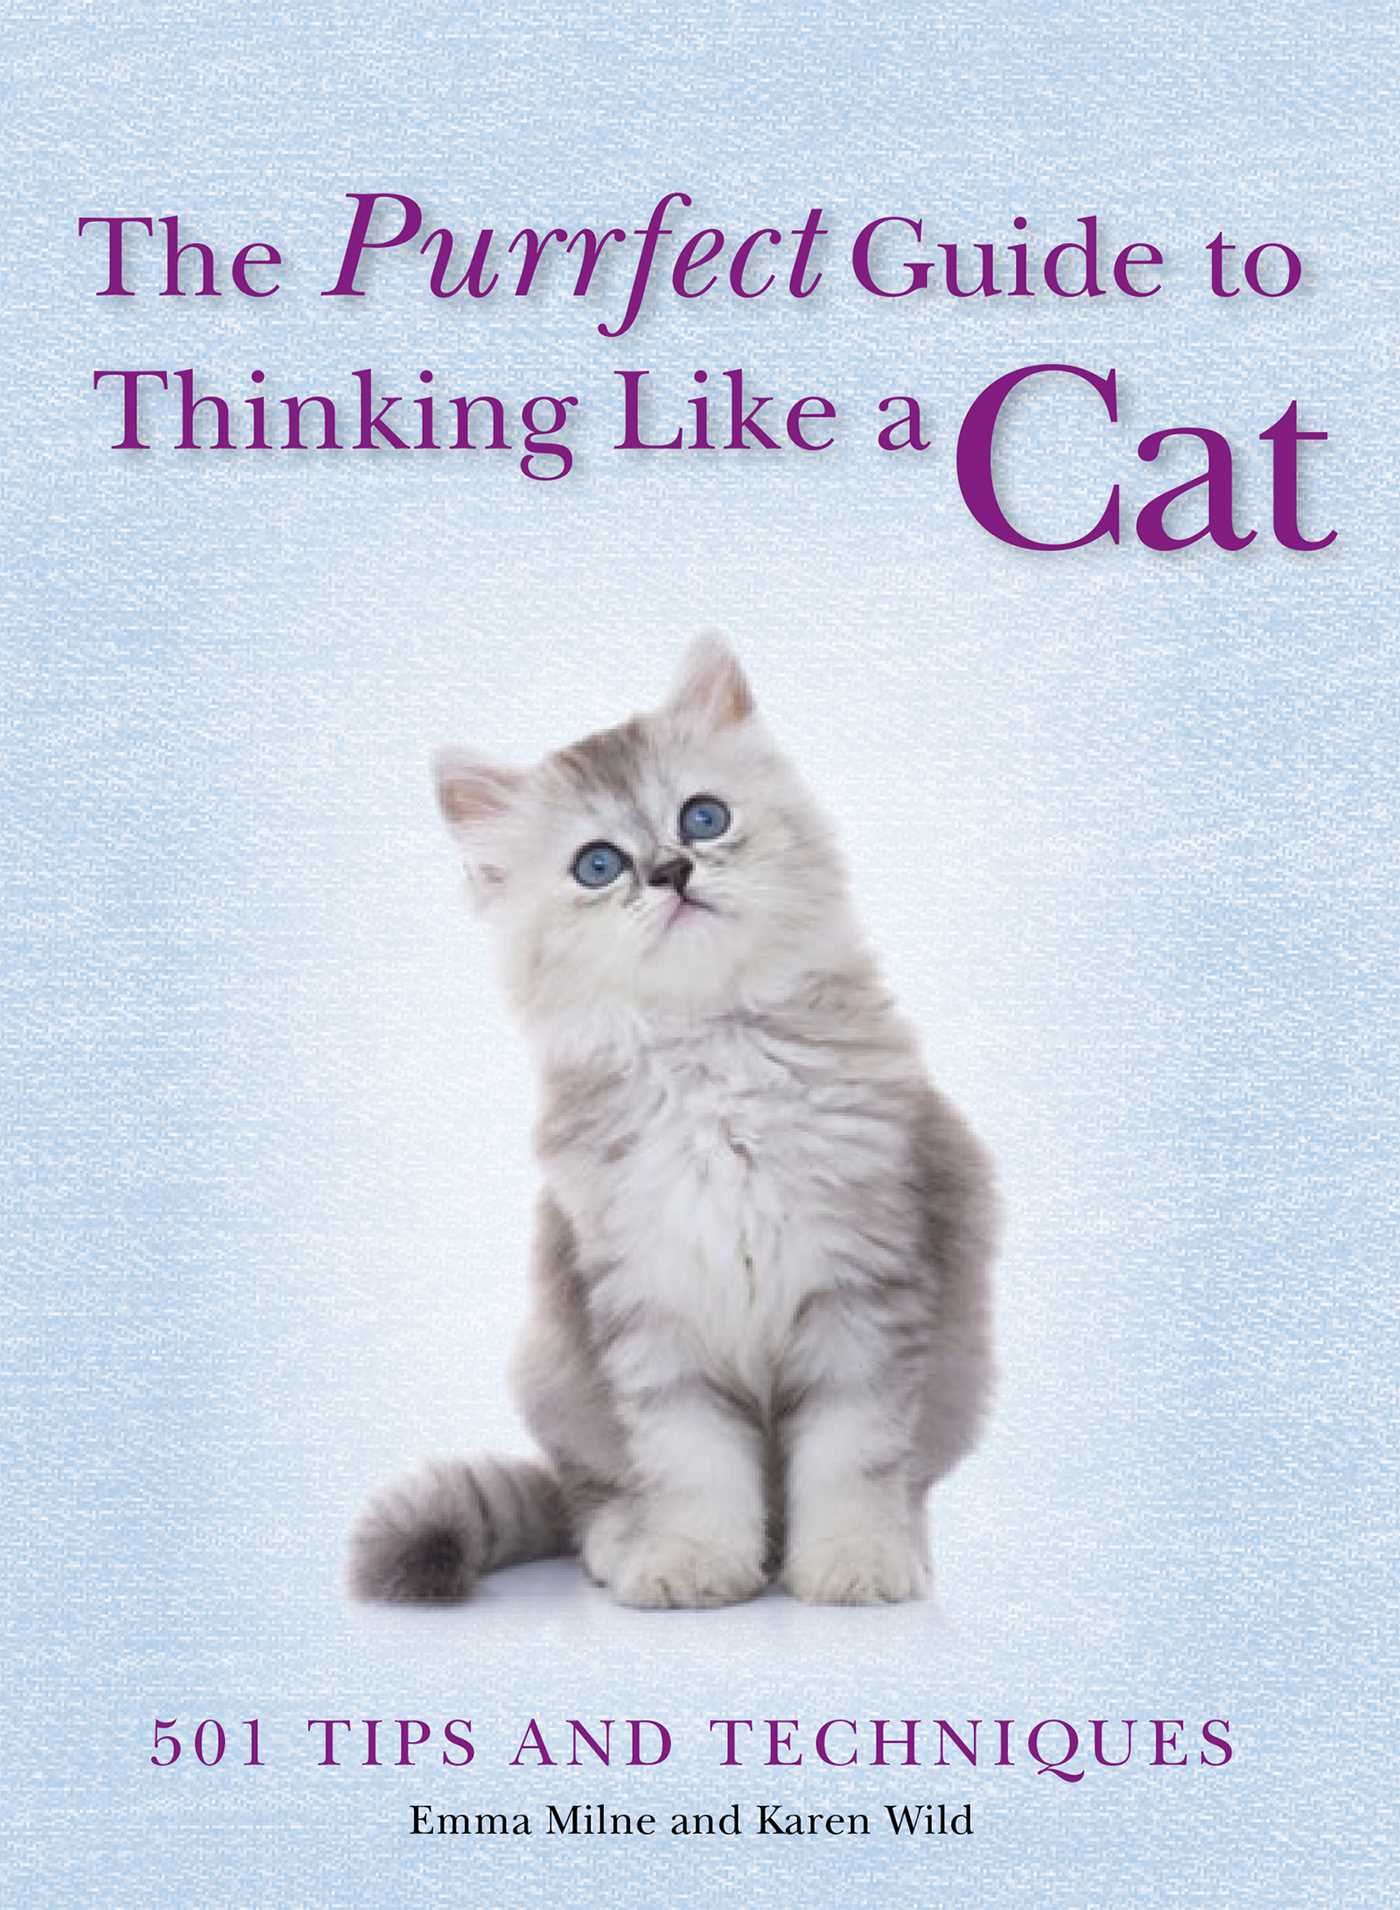 The purrfect guide to thinking like a cat 9781684122851 hr